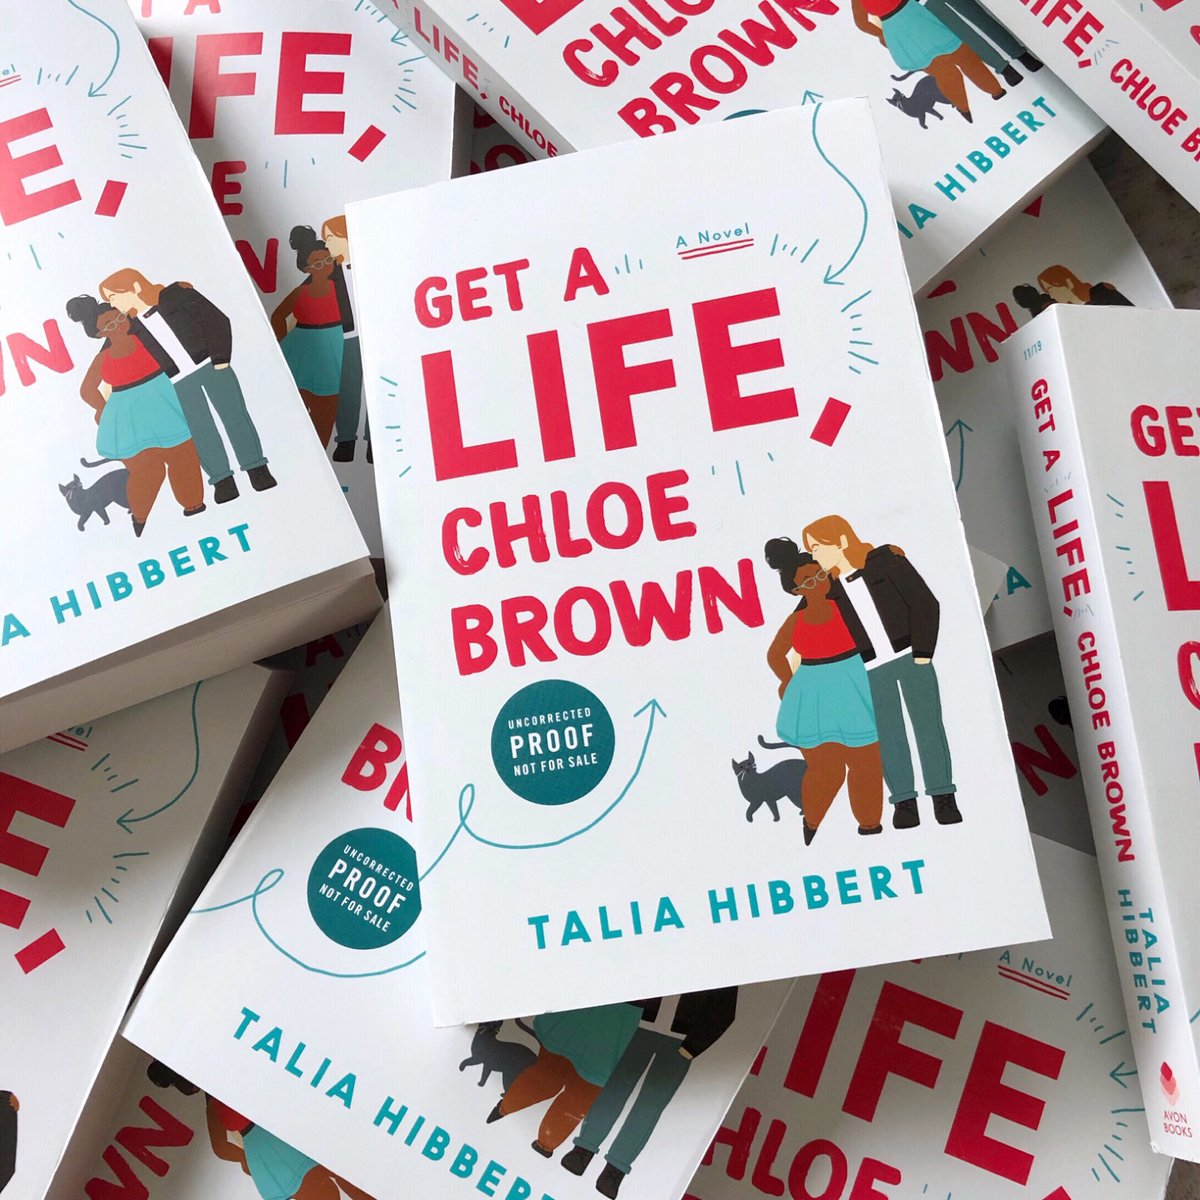 Get a Life, Chloe Brown by Talia Hibbert.